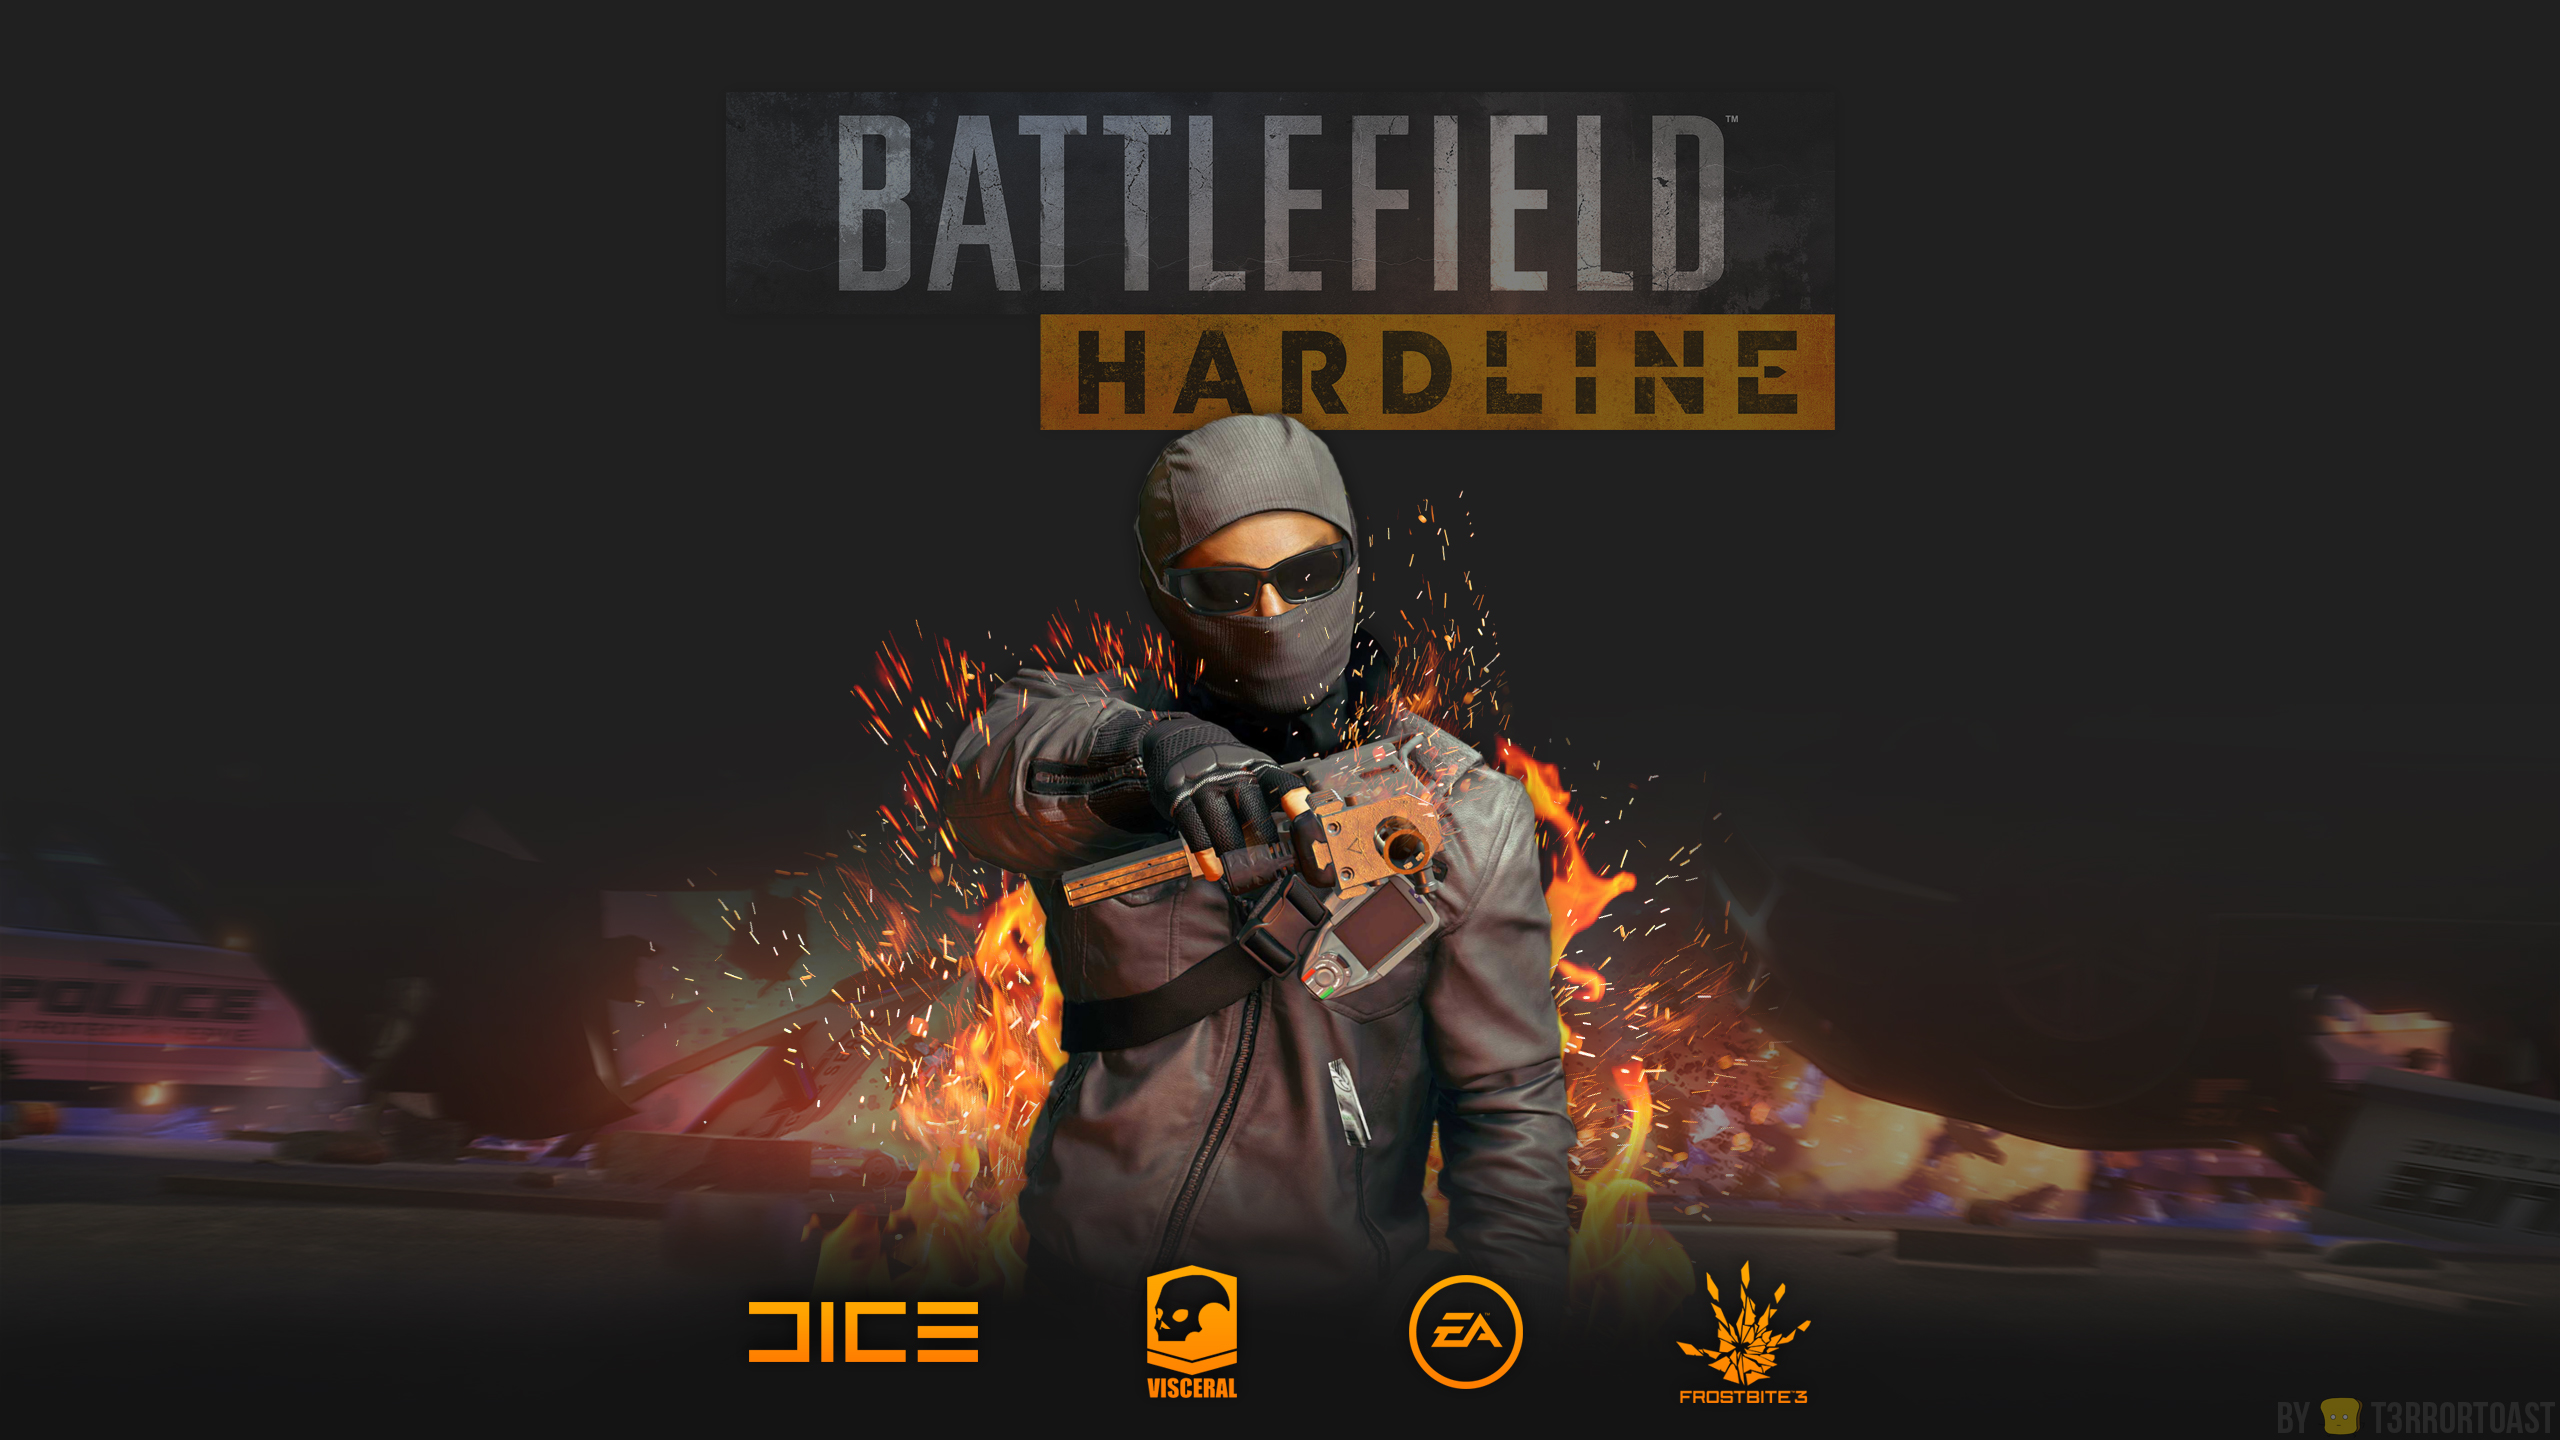 Battlefield Hardline Wallpaper Computer Wallpapers Desktop Backgrounds 2560x1440